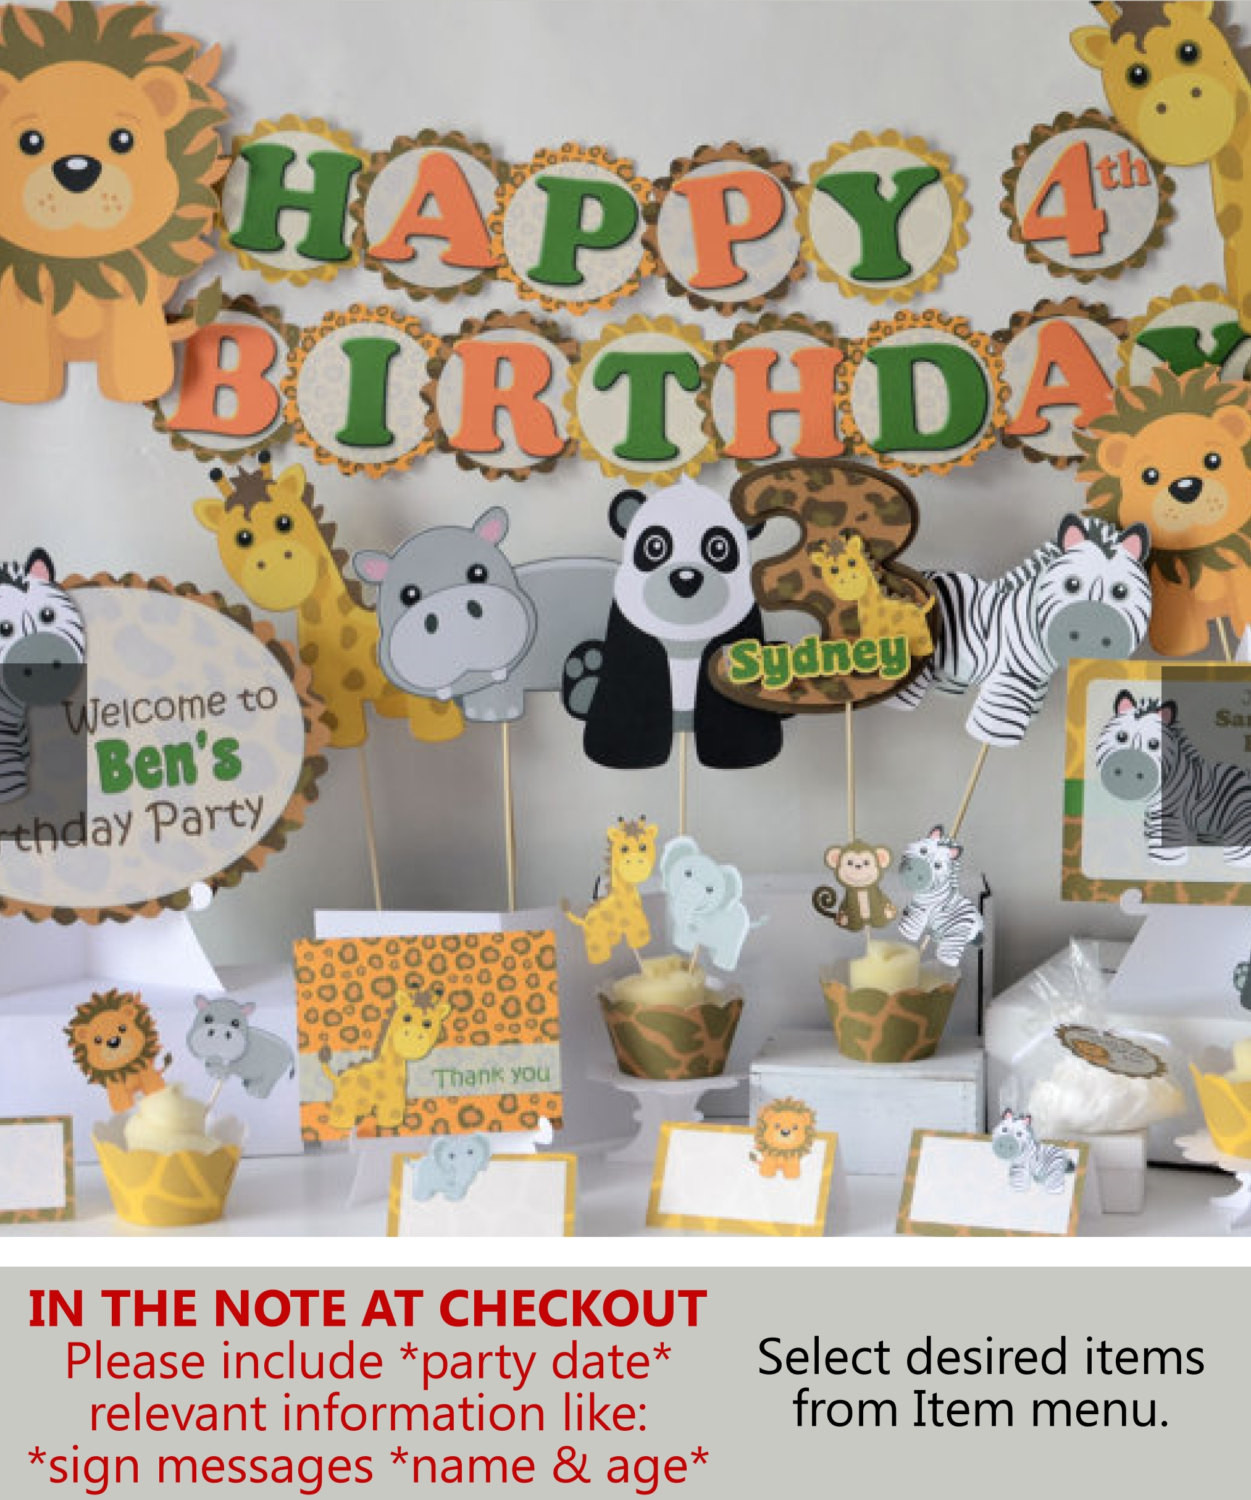 Safari Birthday Party Decorations  Jungle Birthday Party Supplies Safari Baby Shower Decorations